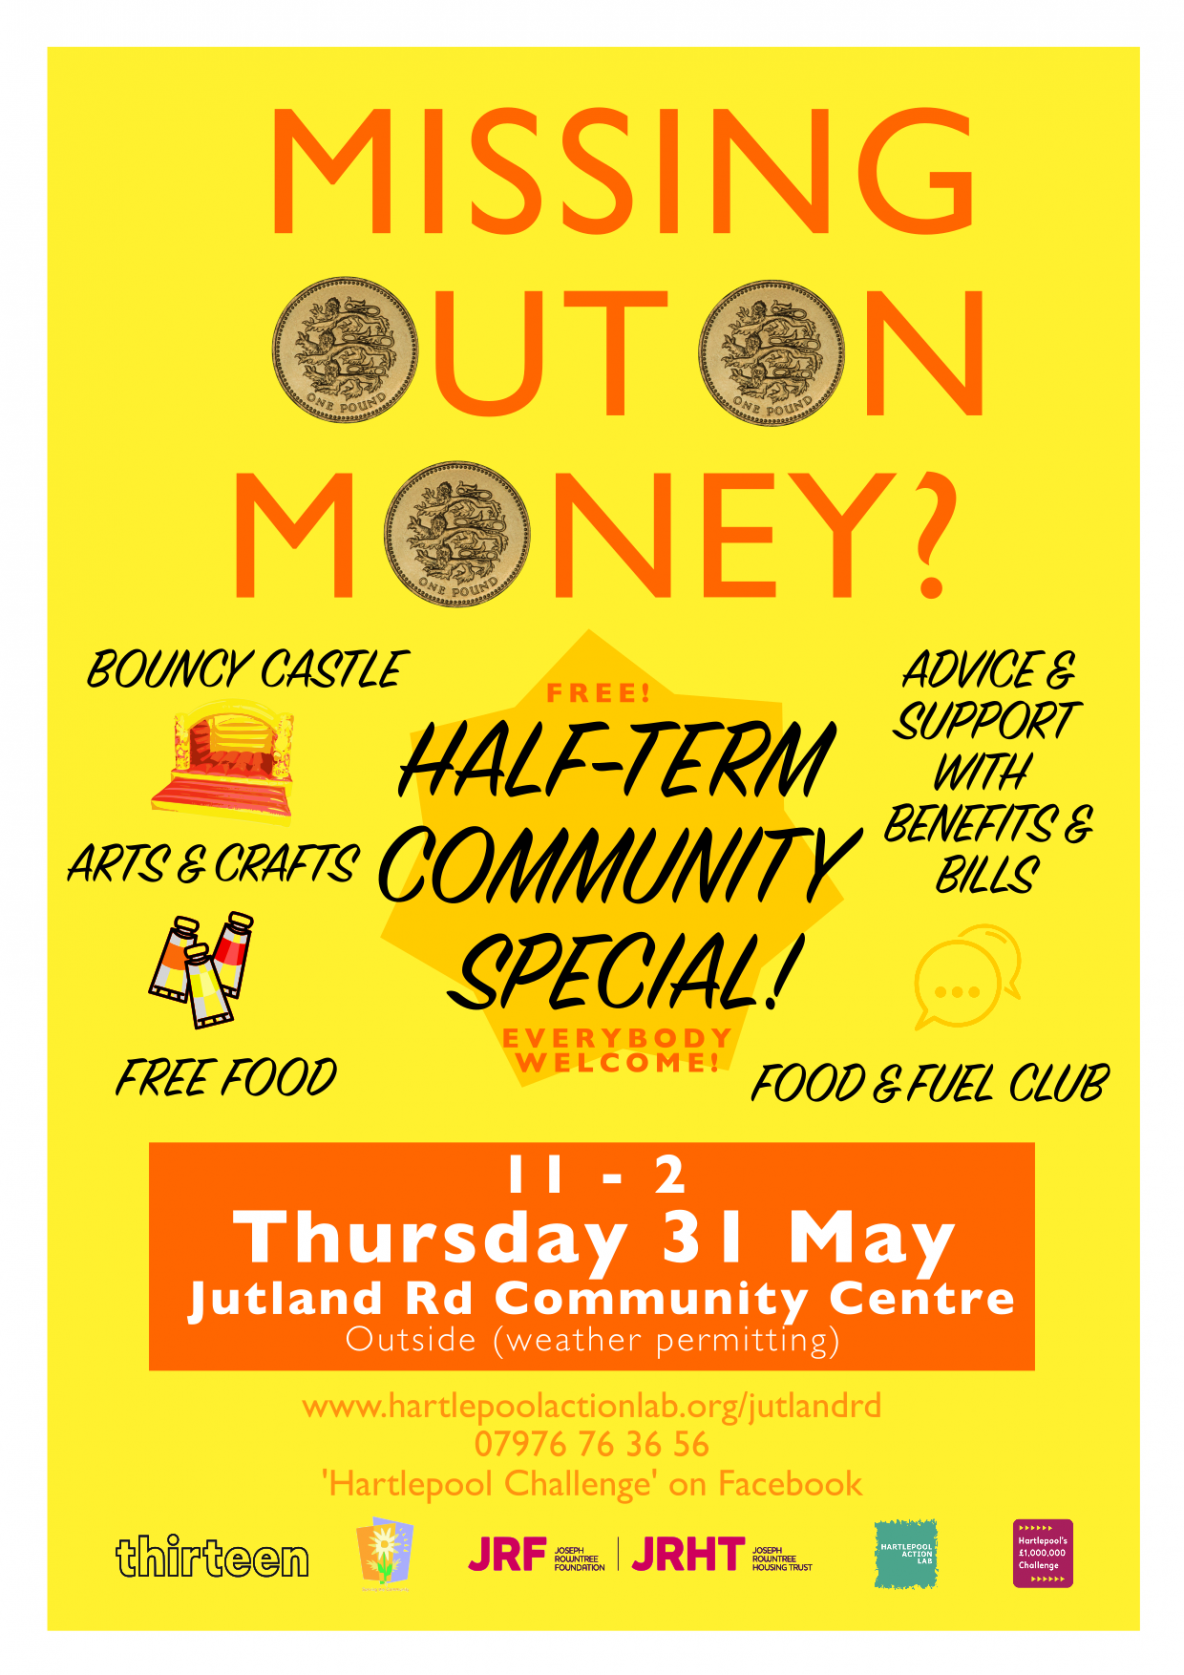 Missing Out on Money 31 May 11 - 2 Jutland Road Community Hub Hartlepool